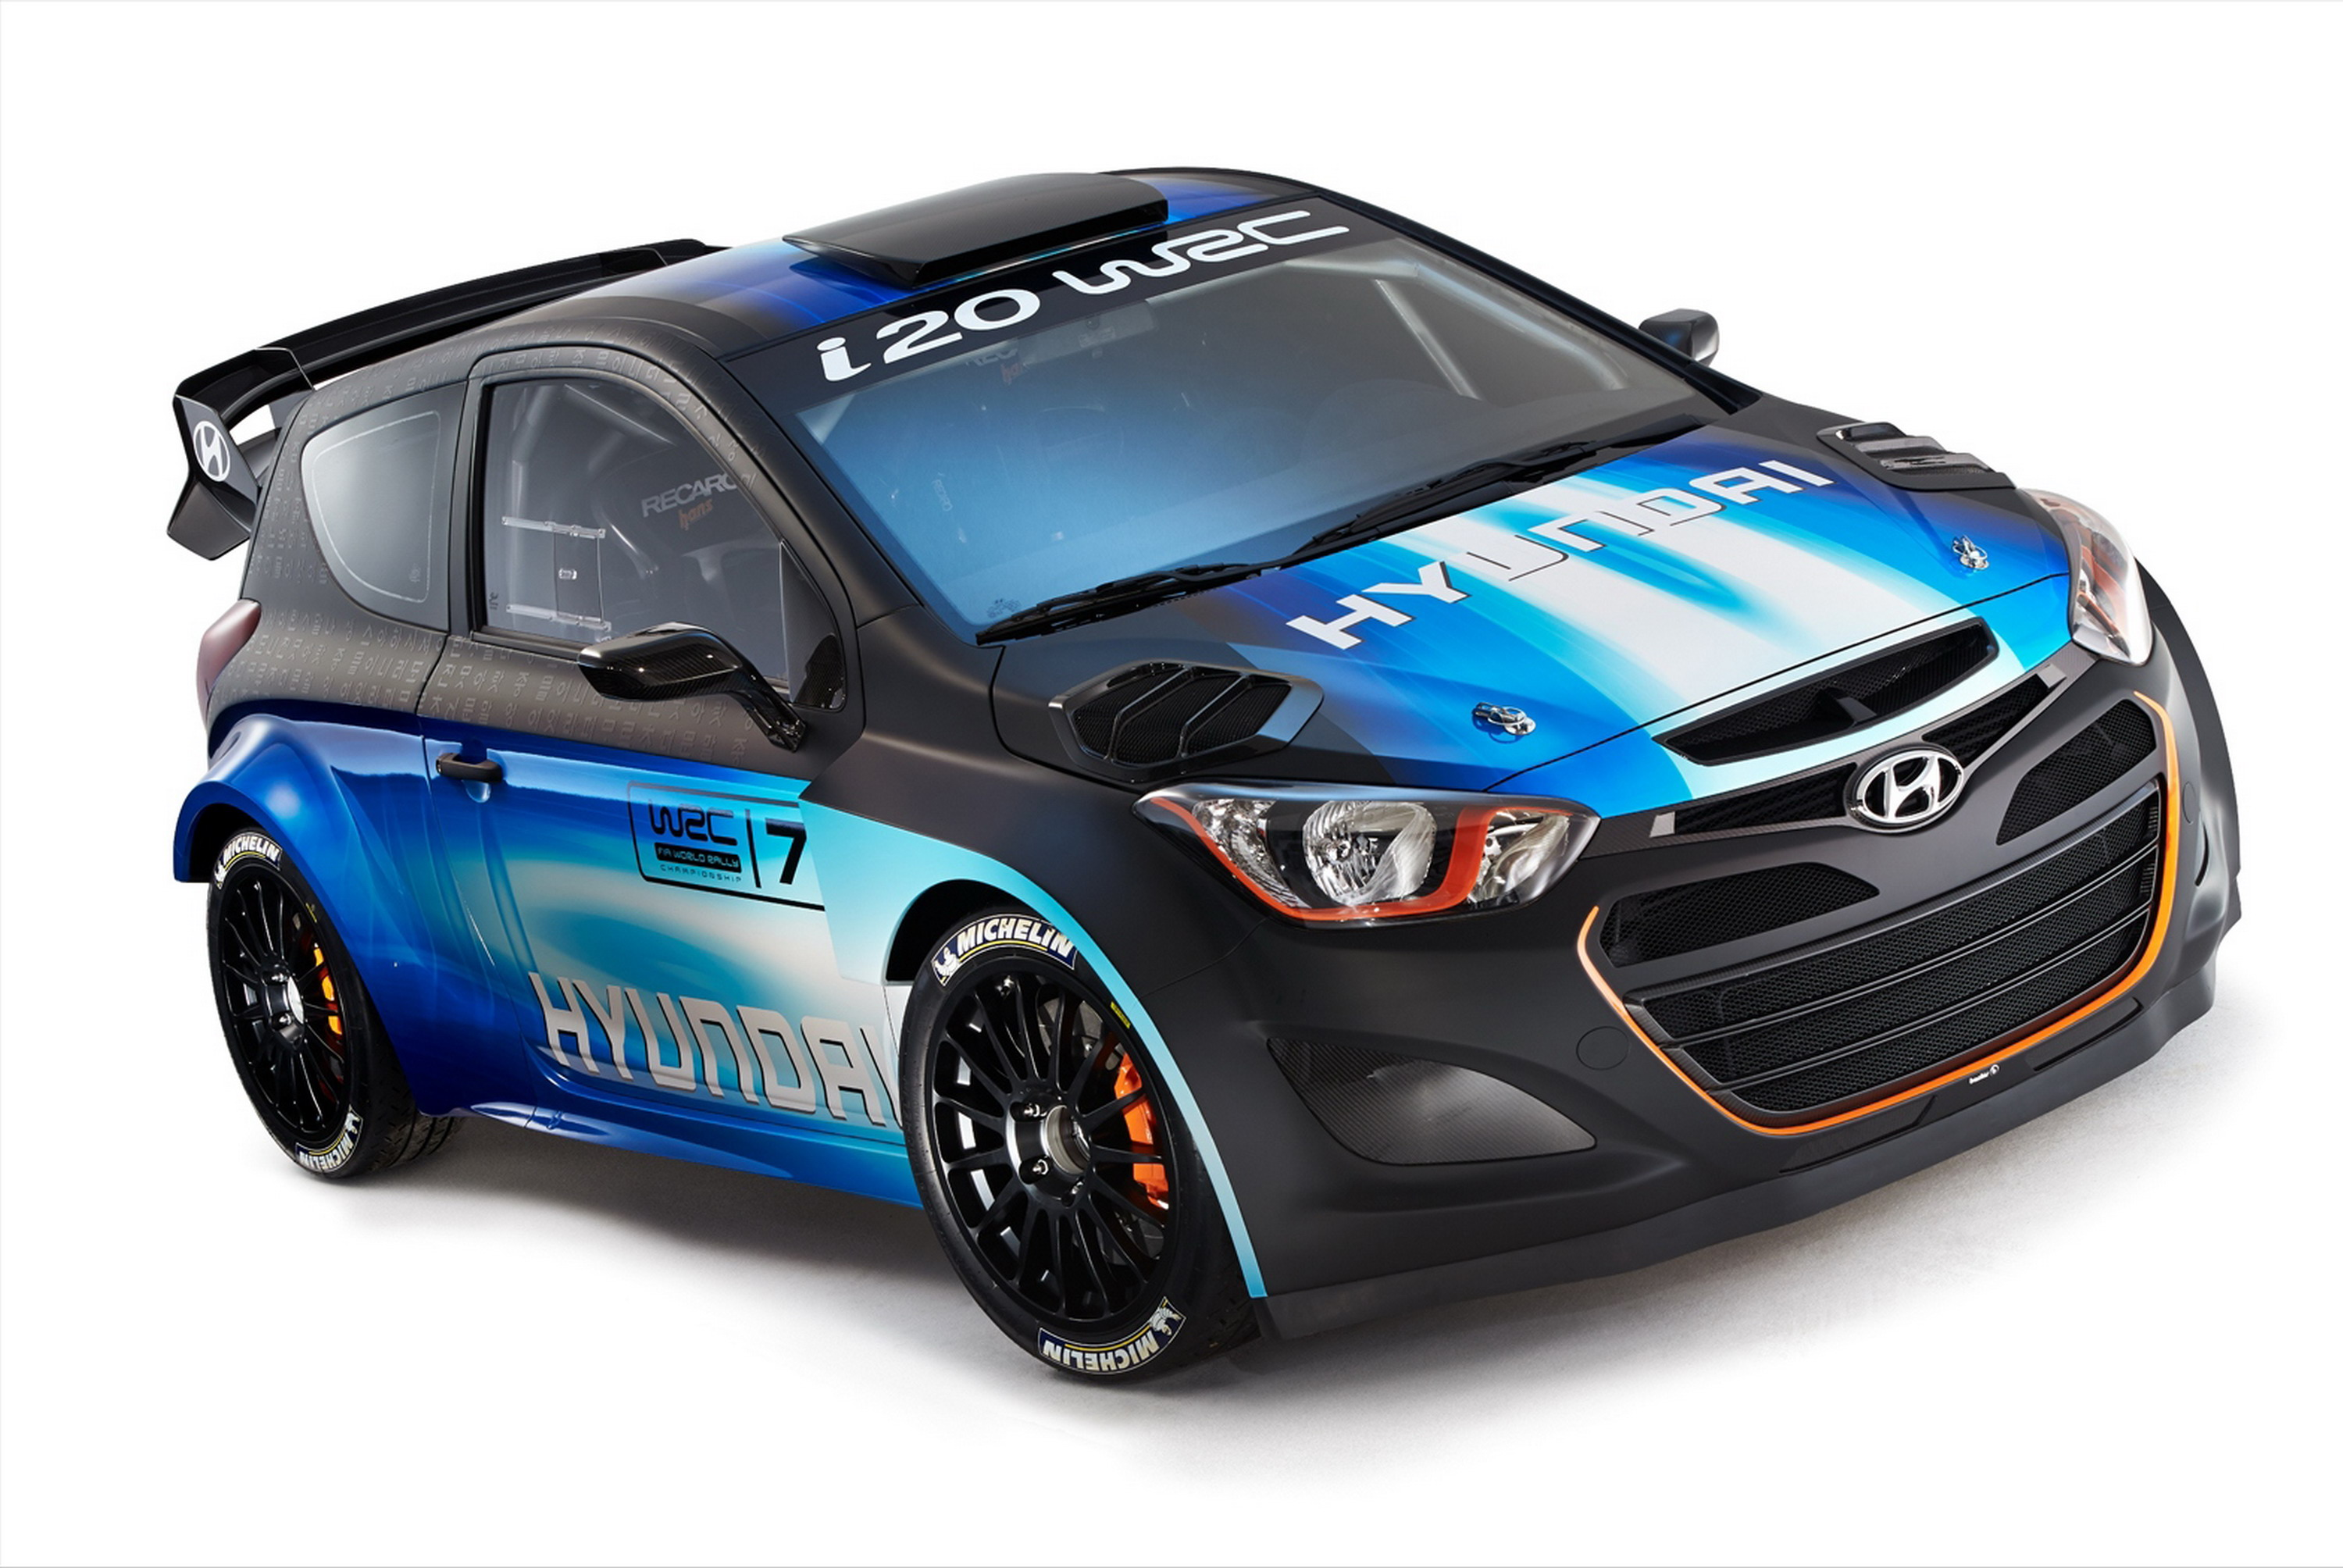 Hyundai has unveiled at the 2013 geneva motor show an updated version of its i20 wrc racecar set to be used in the fia world rally championship in the 2014